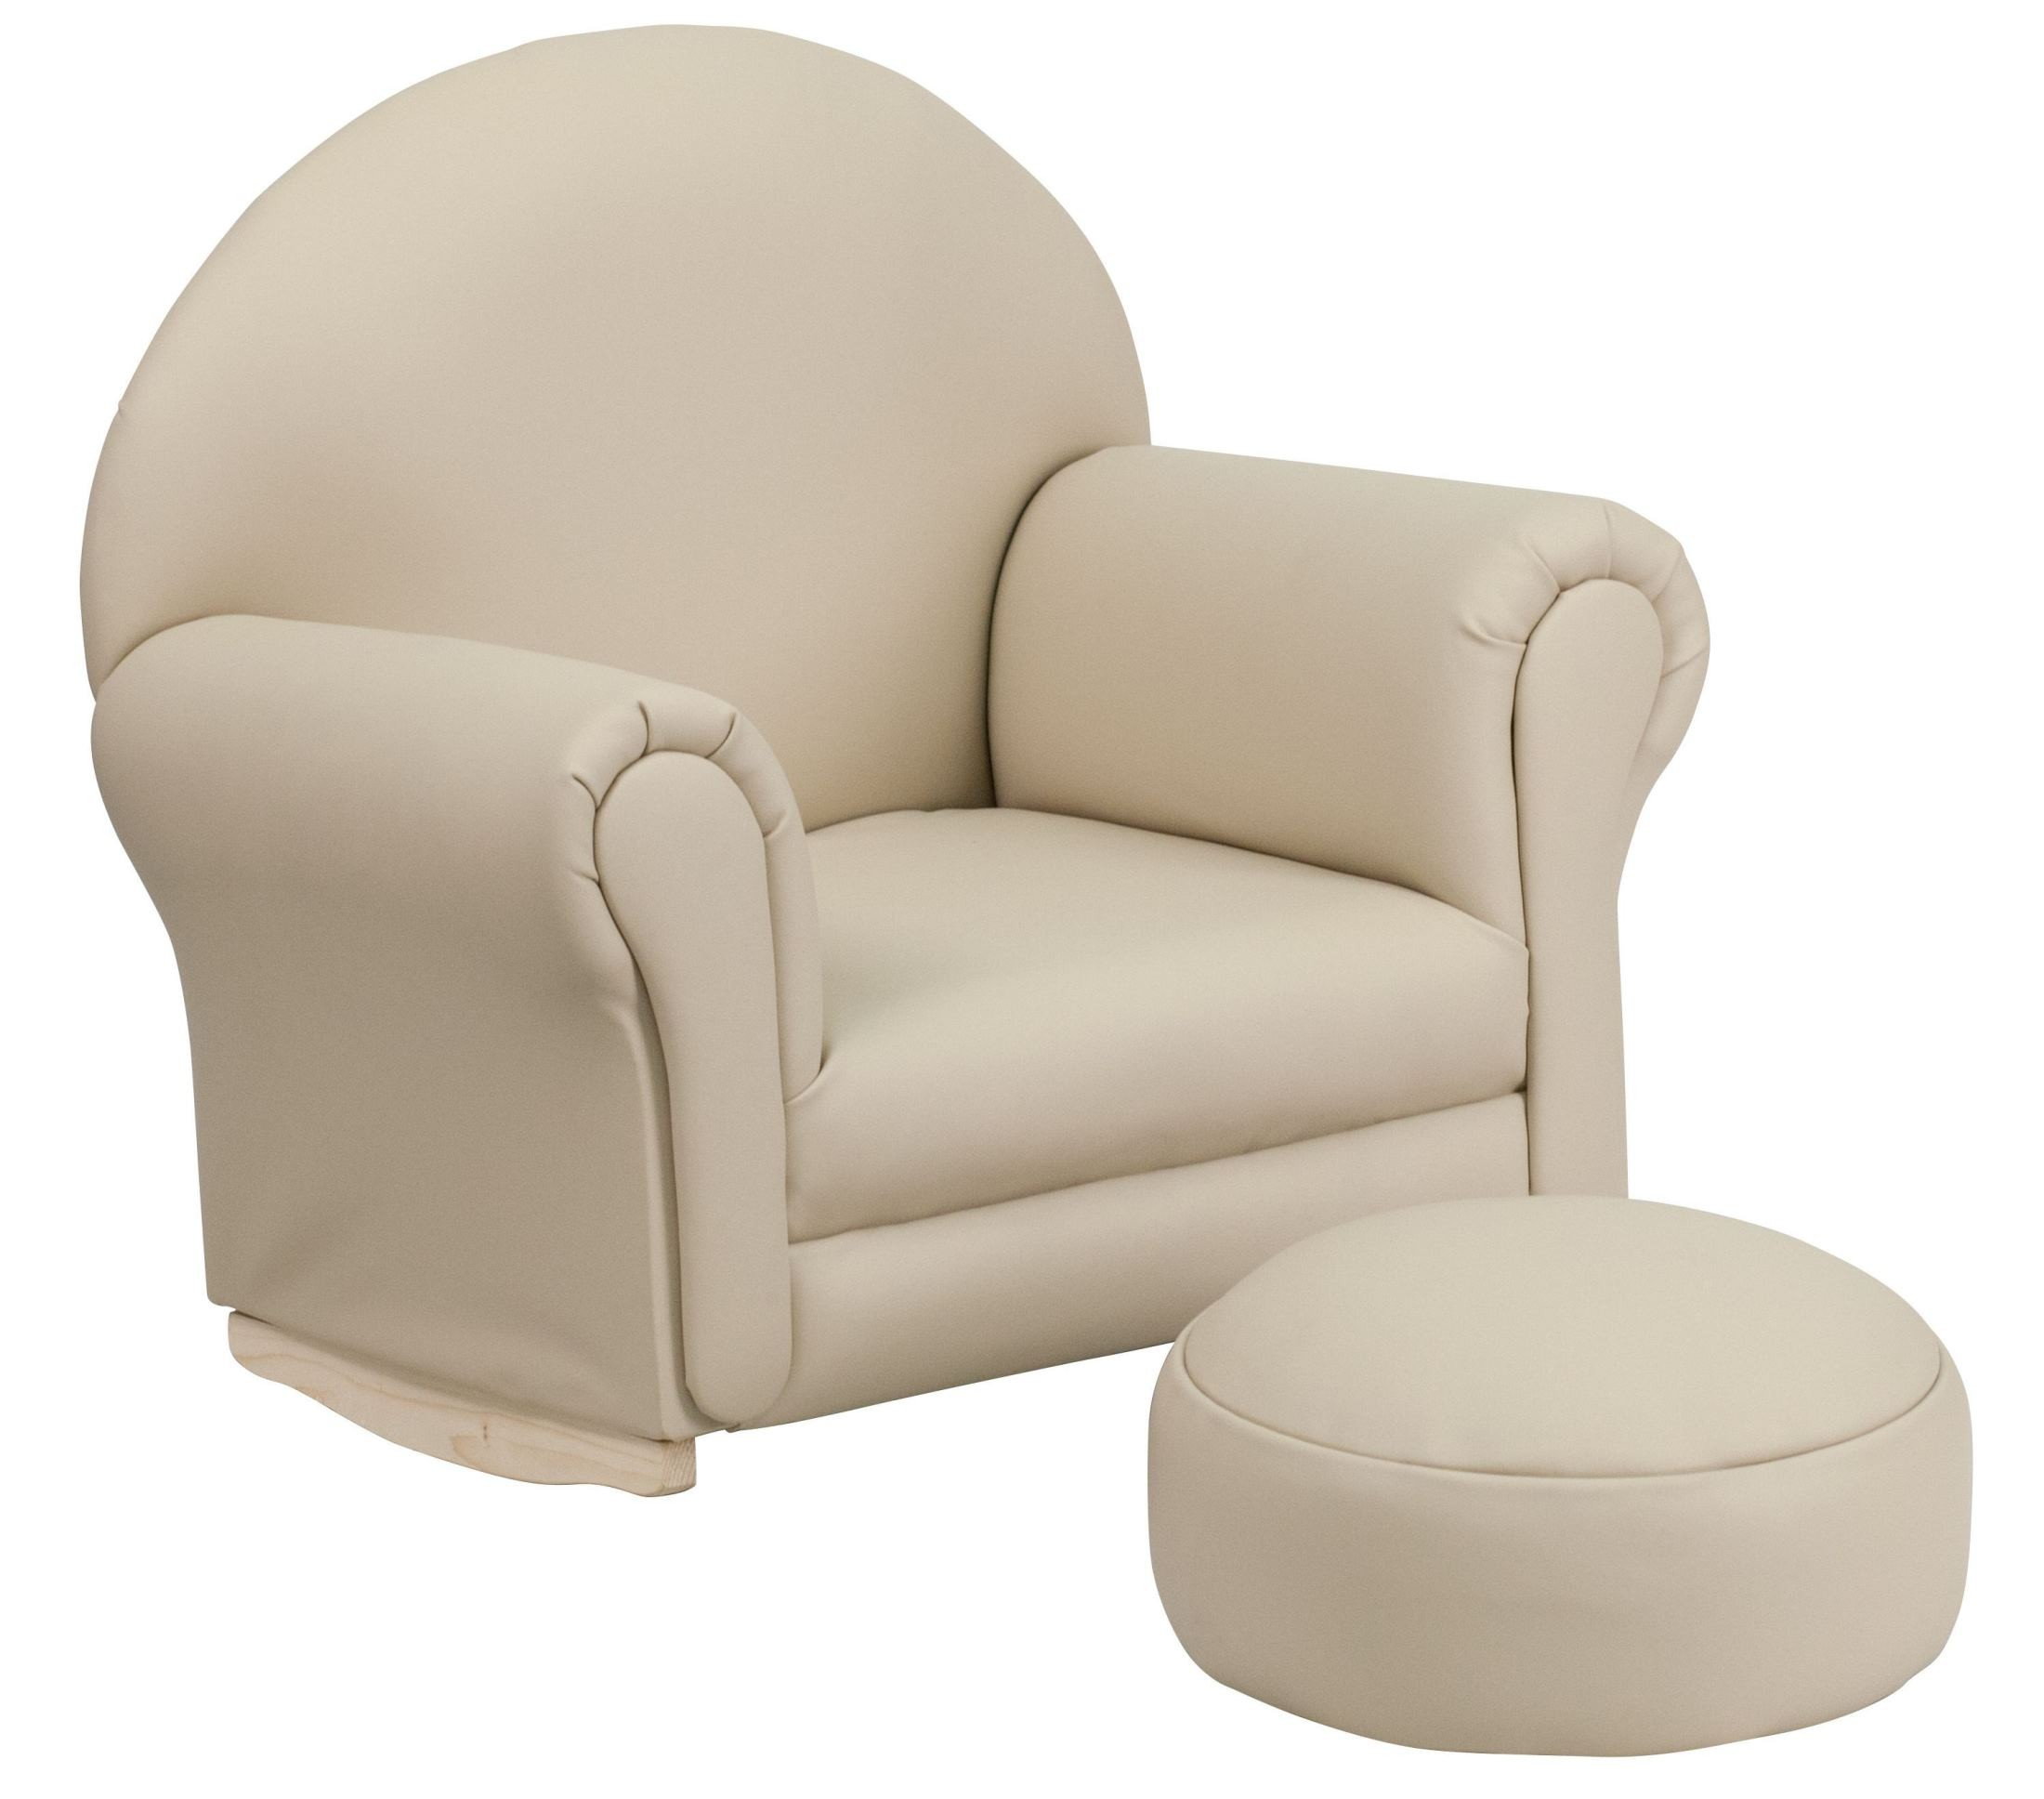 Kids Beige Vinyl Rocker Chair and Footrest, SF-03-OTTO-BEIGE-GG ...